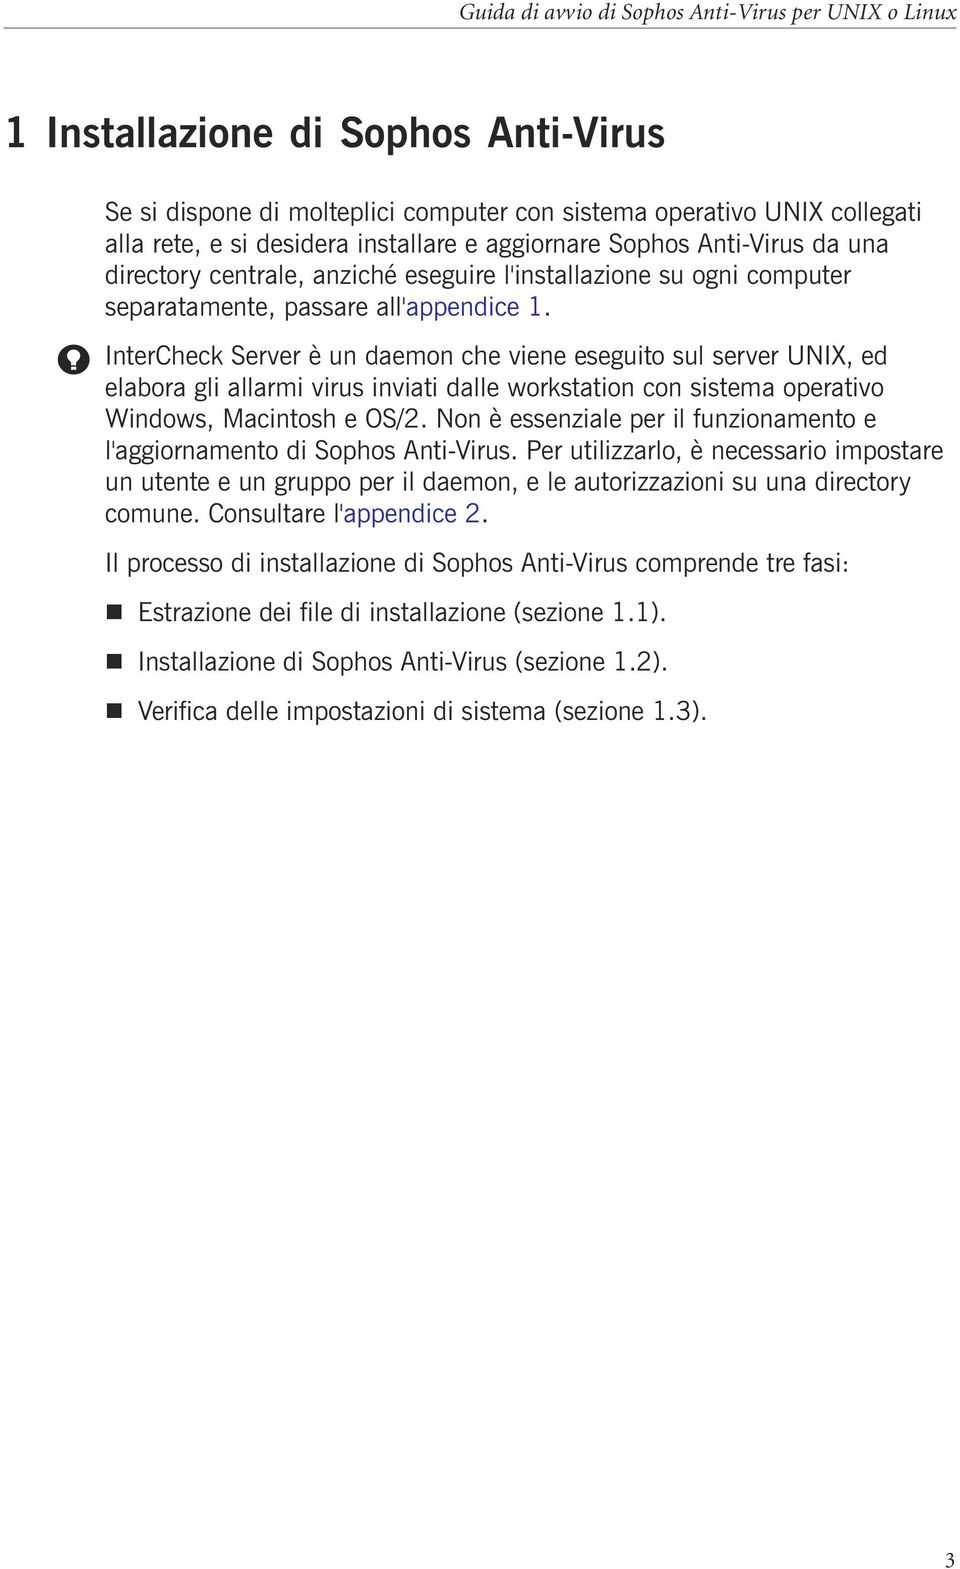 InterCheck Server è un daemon che viene eseguito sul server UNIX, ed elabora gli allarmi virus inviati dalle workstation con sistema operativo Windows, Macintosh e OS/2.